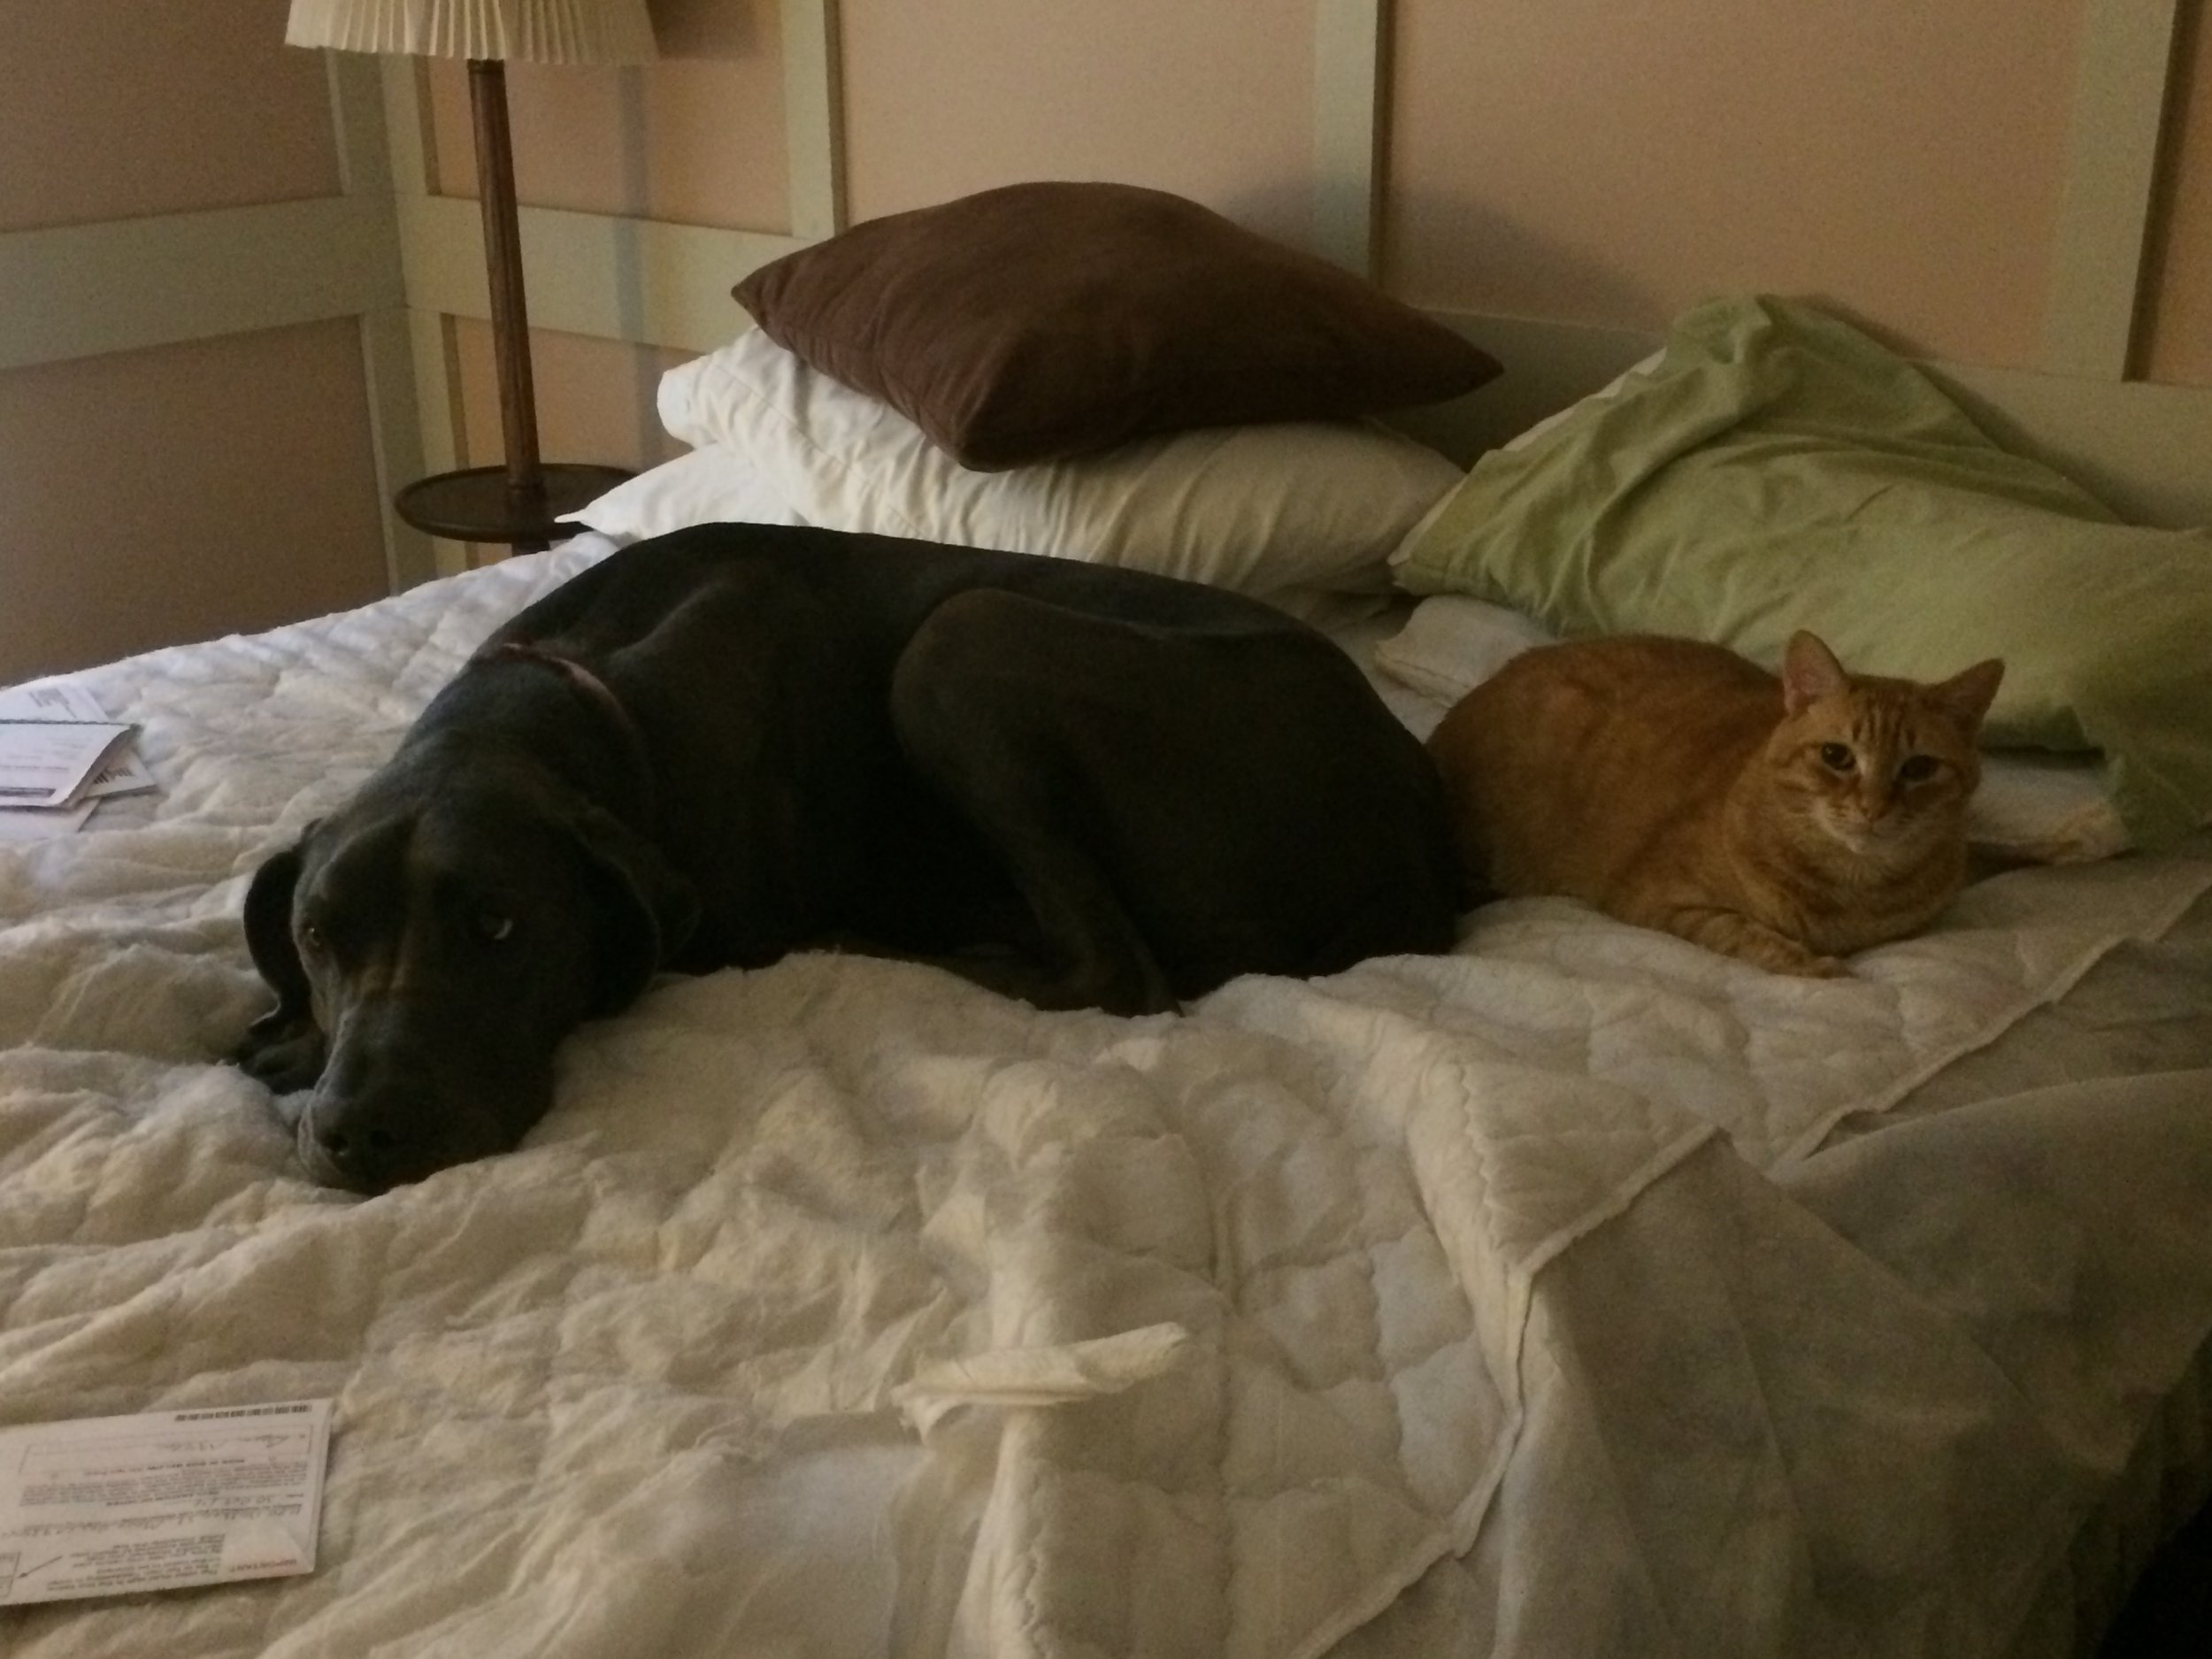 Buddies, in the no-pack room, while the movers packed our house in Virginia, with the bed stripped down to nothing, freaking the hell out, but providing solace to one another.